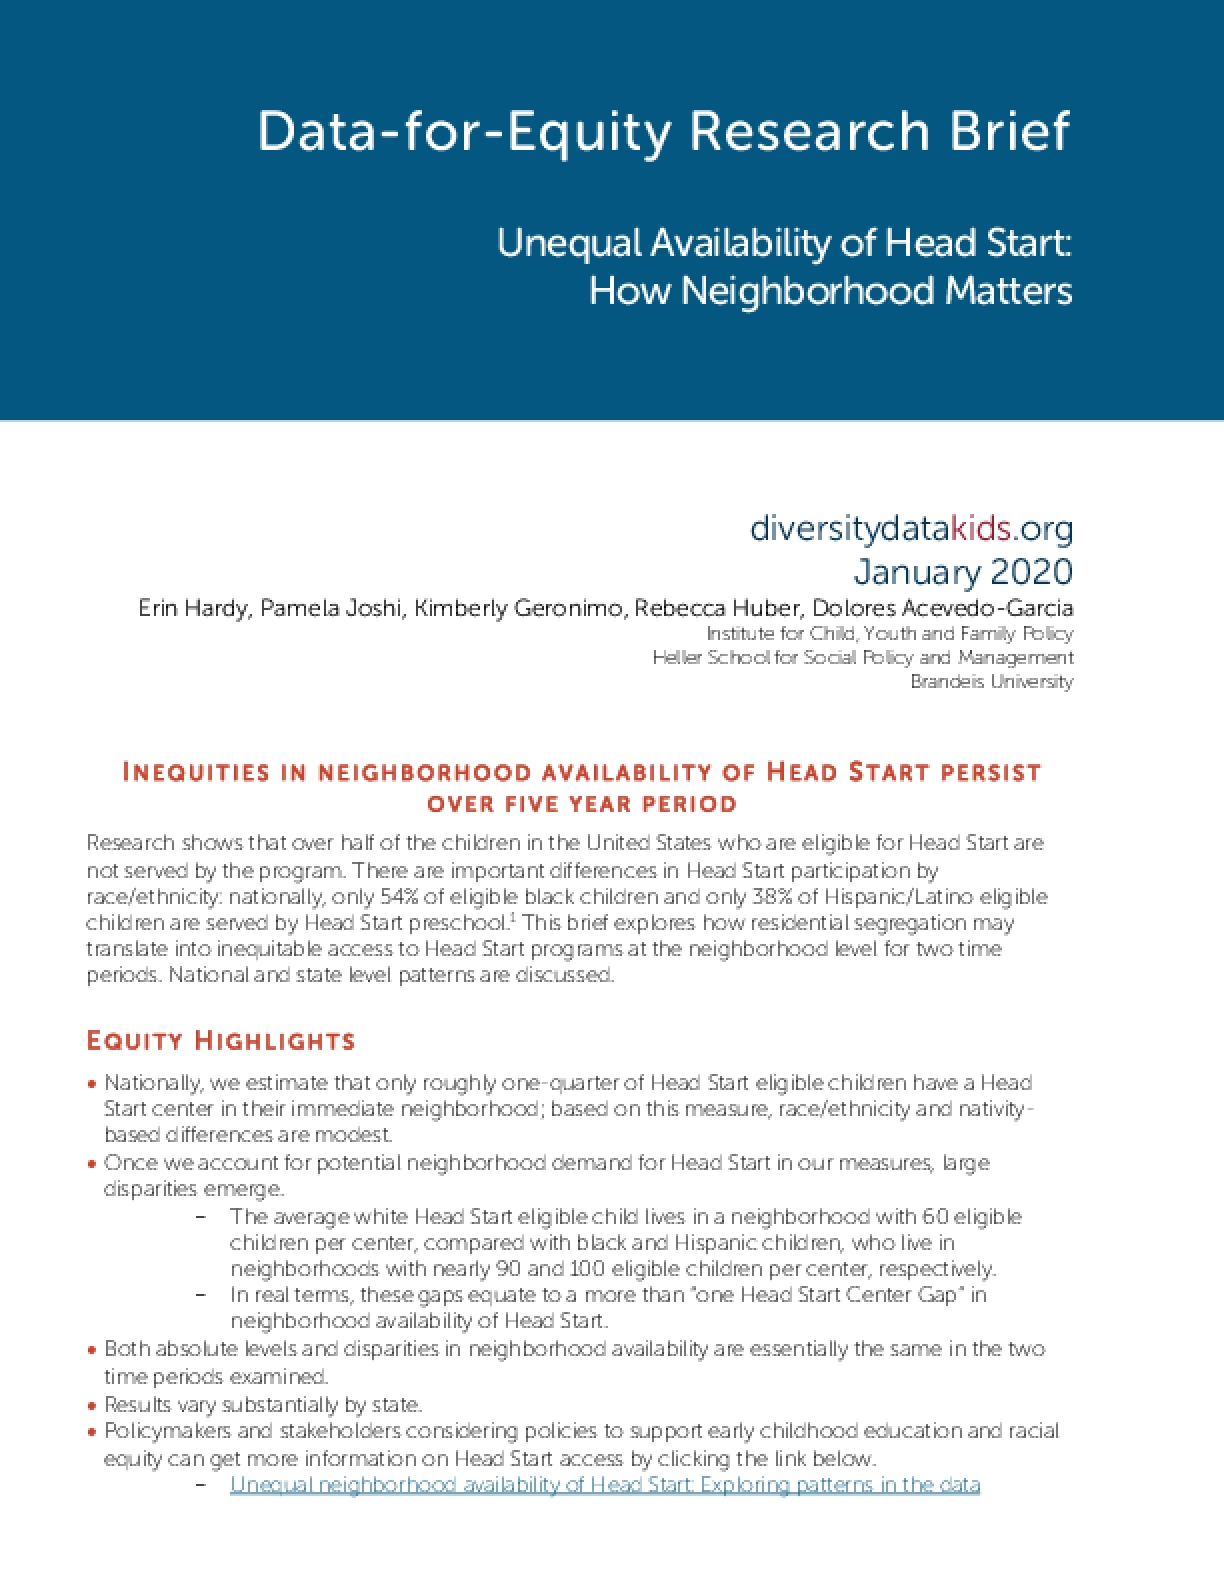 Data-for-Equity Research Brief: Unequal Availability of Head Start, How Neighborhood Matters